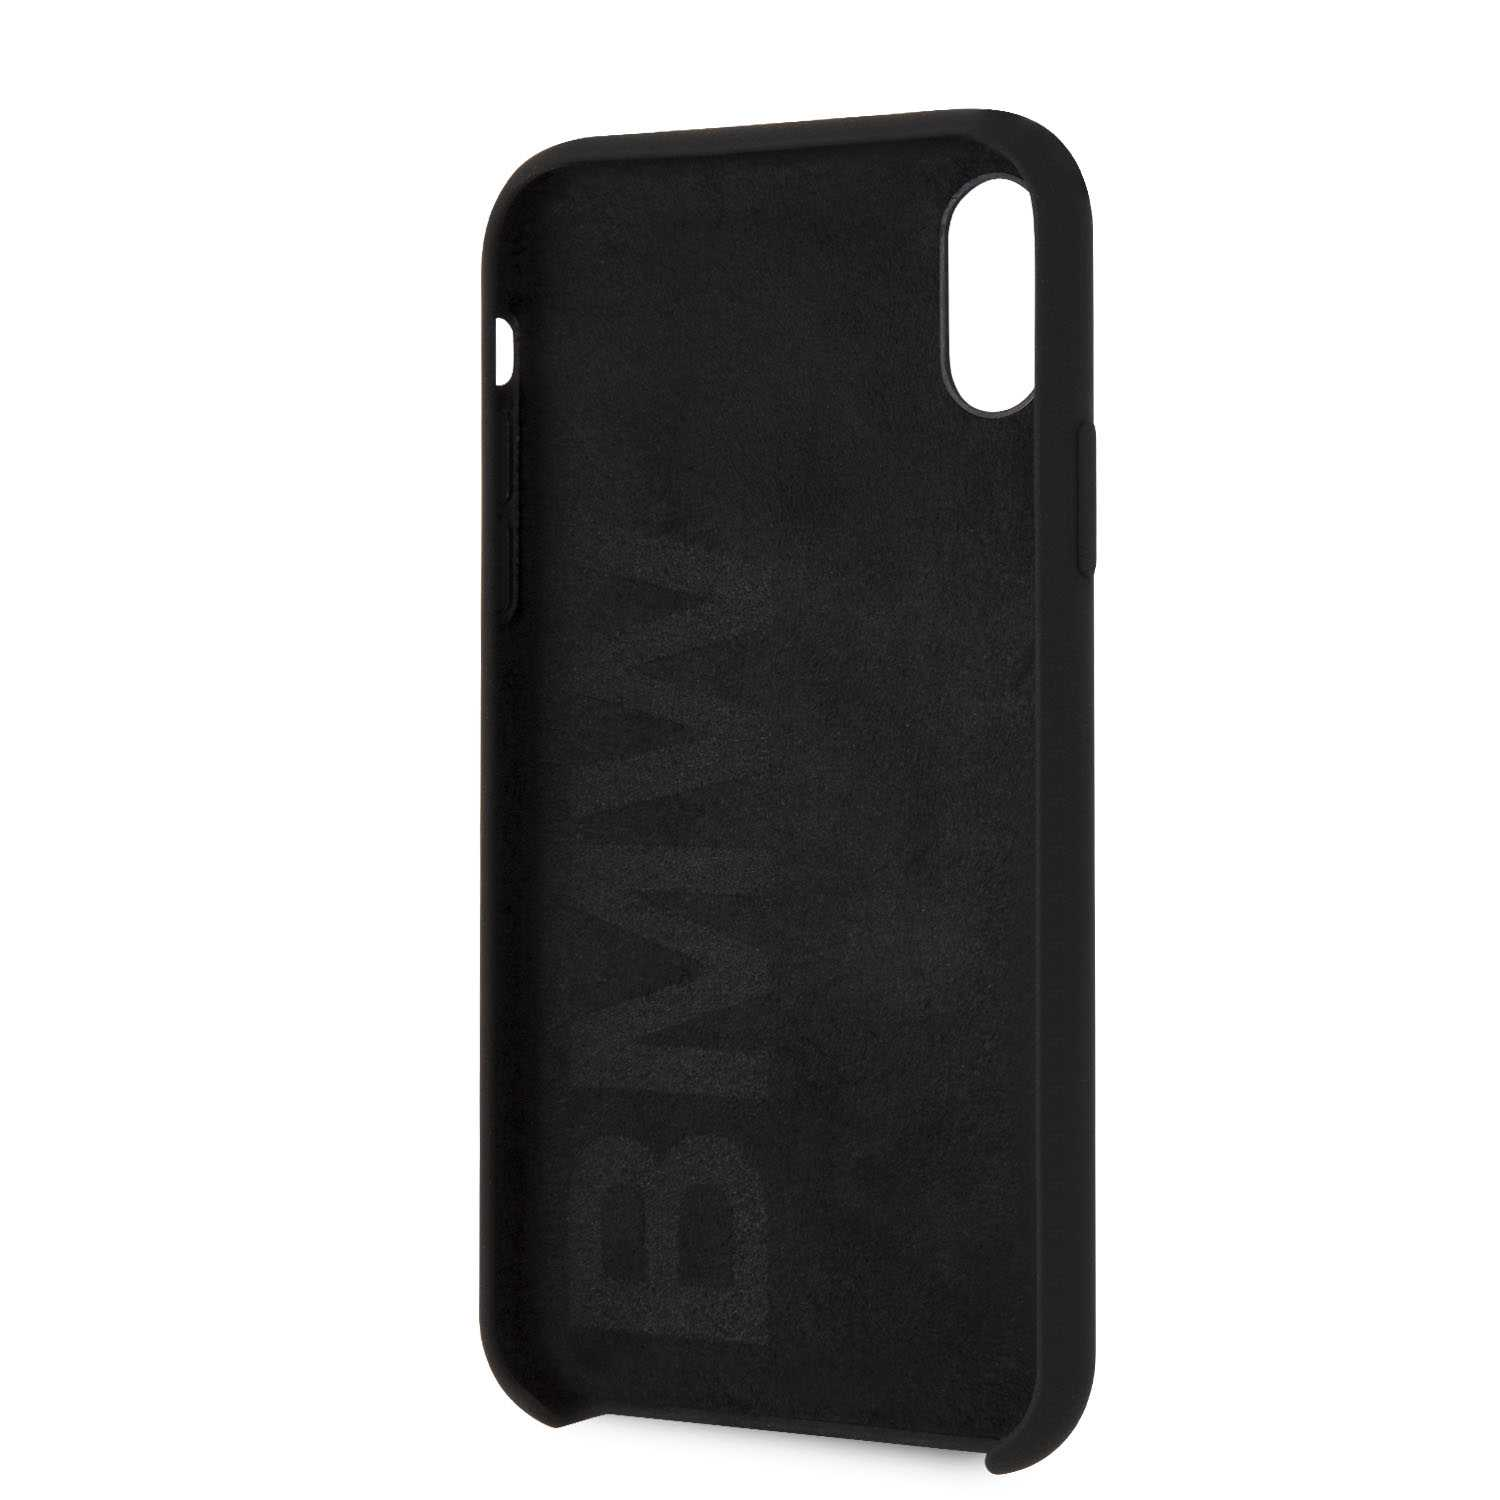 BMW Silicone Hard Case - Etui iPhone Xs Max (Black)